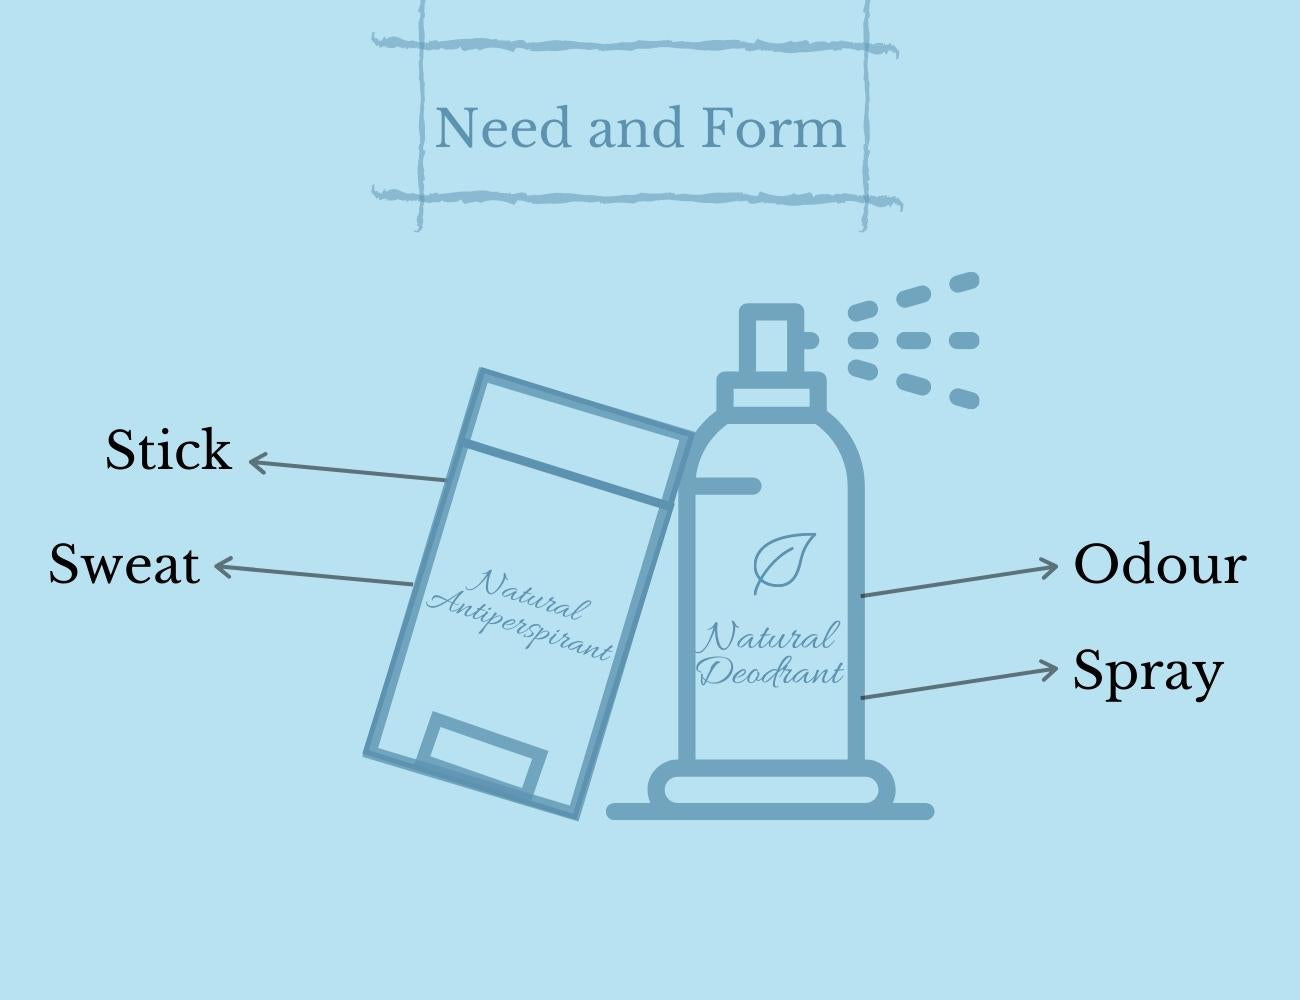 This is an image showing factors to consider before buying a natural aluminium free deodorants